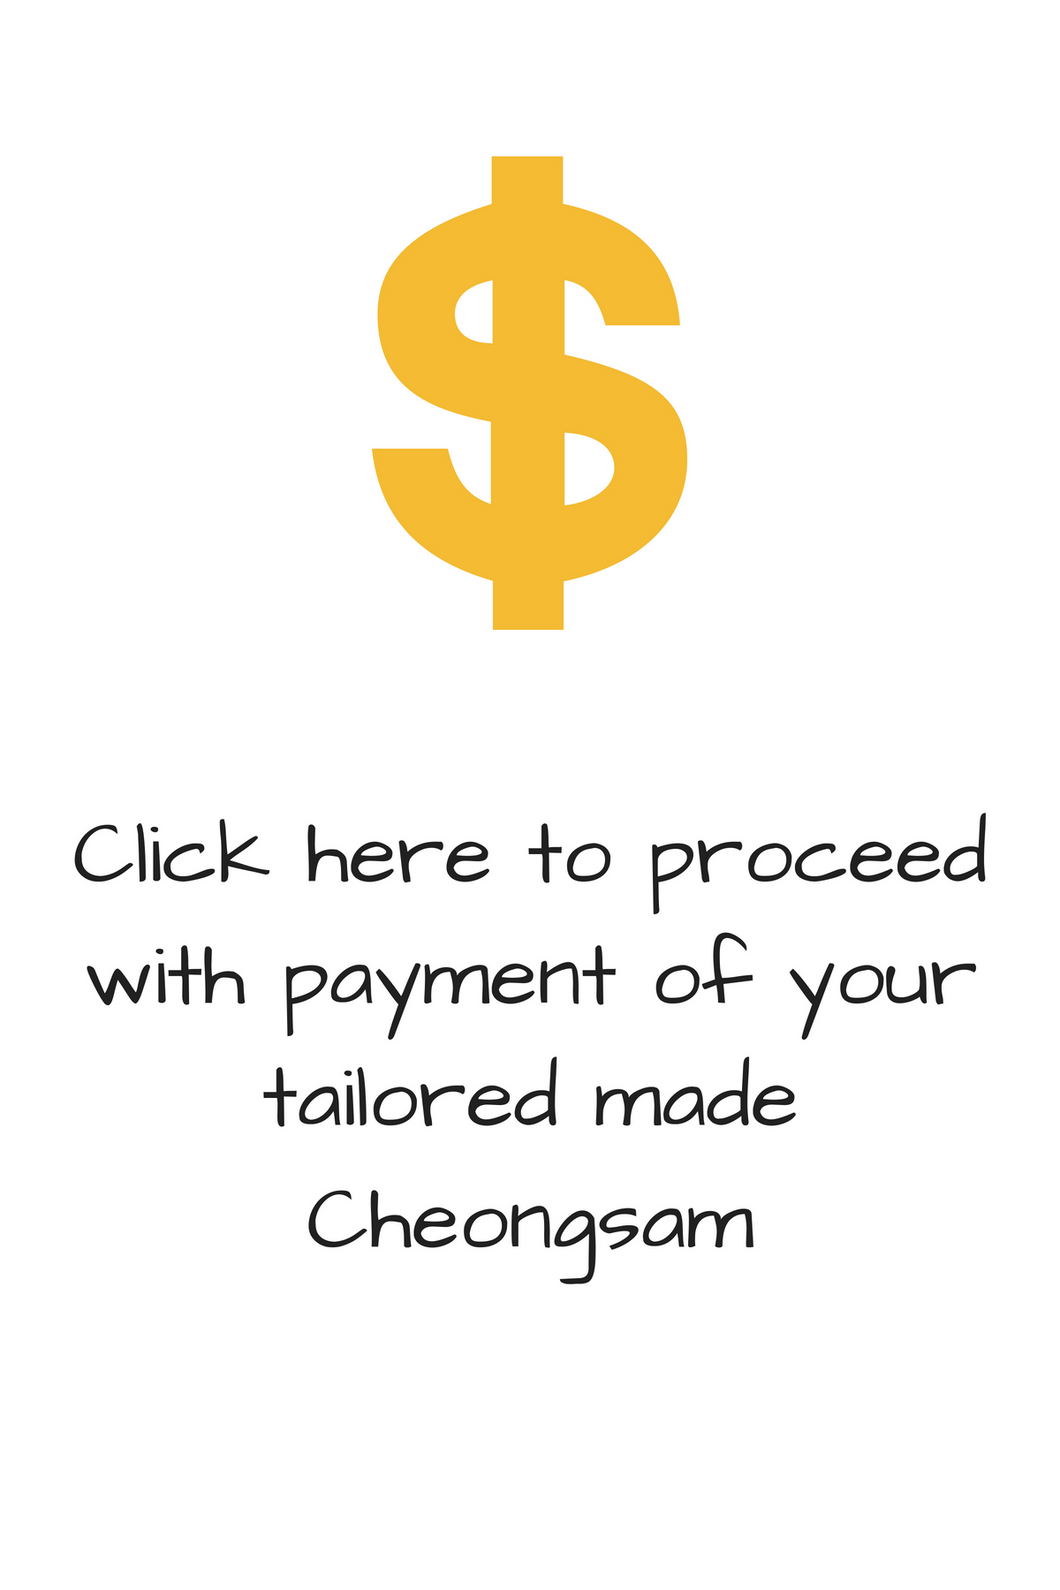 Cheongsam Payment (1 piece outfit - blouse)